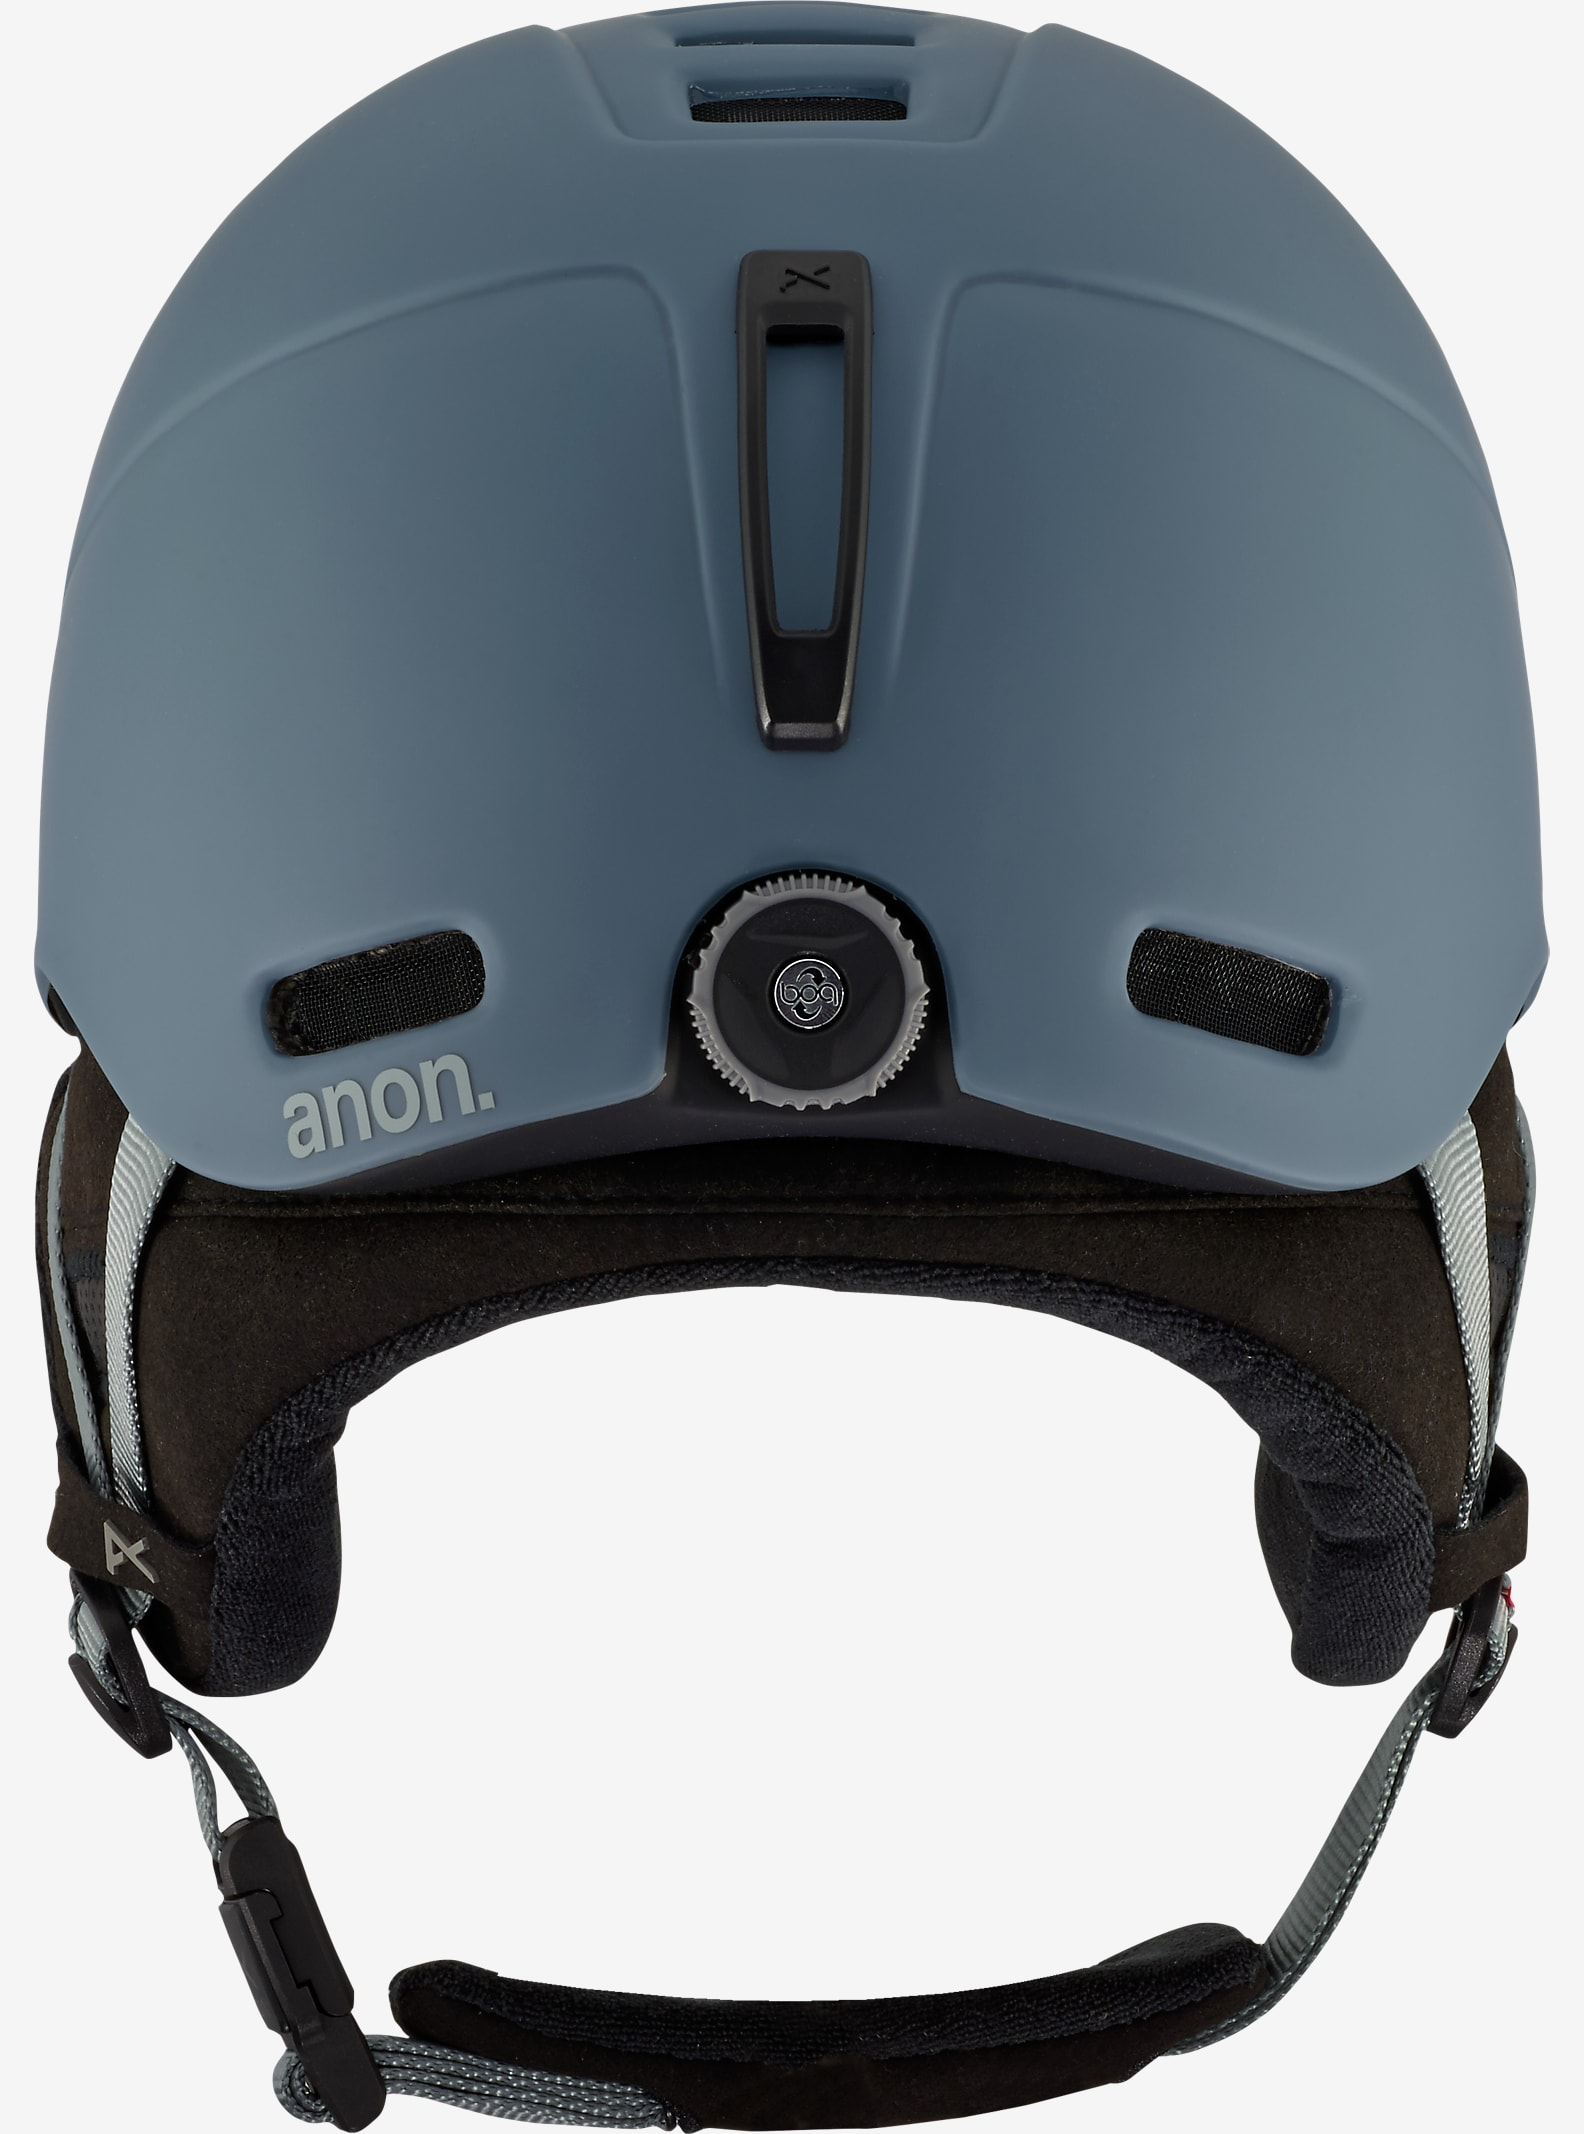 anon. Helo 2.0 Helmet shown in Dark Gray